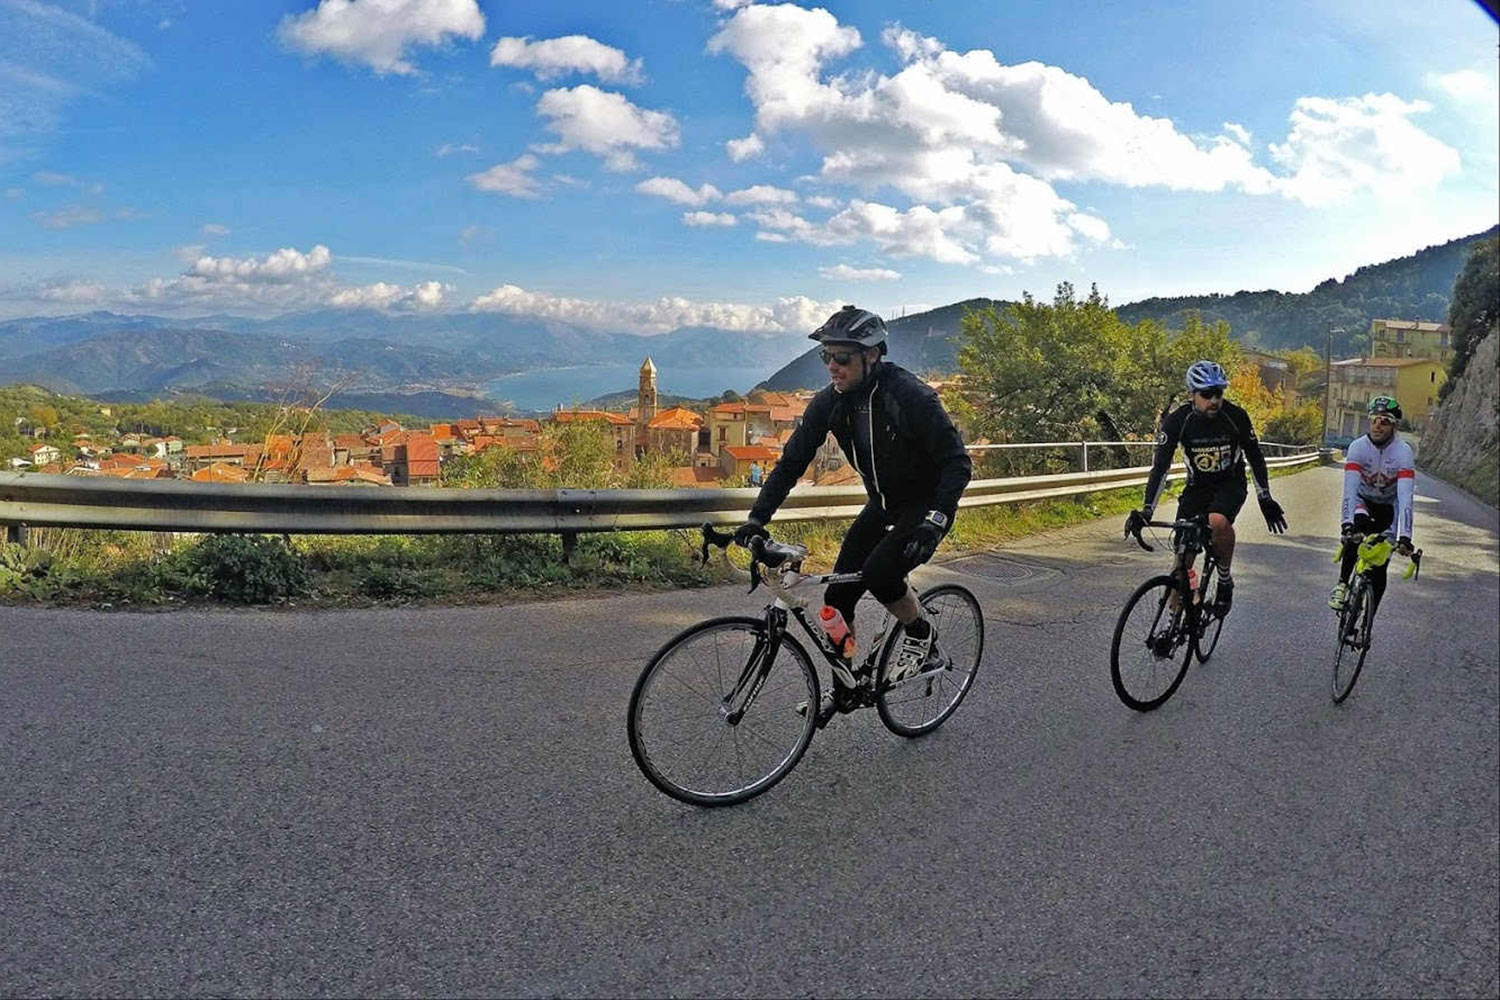 Cycling in Cilento National Park